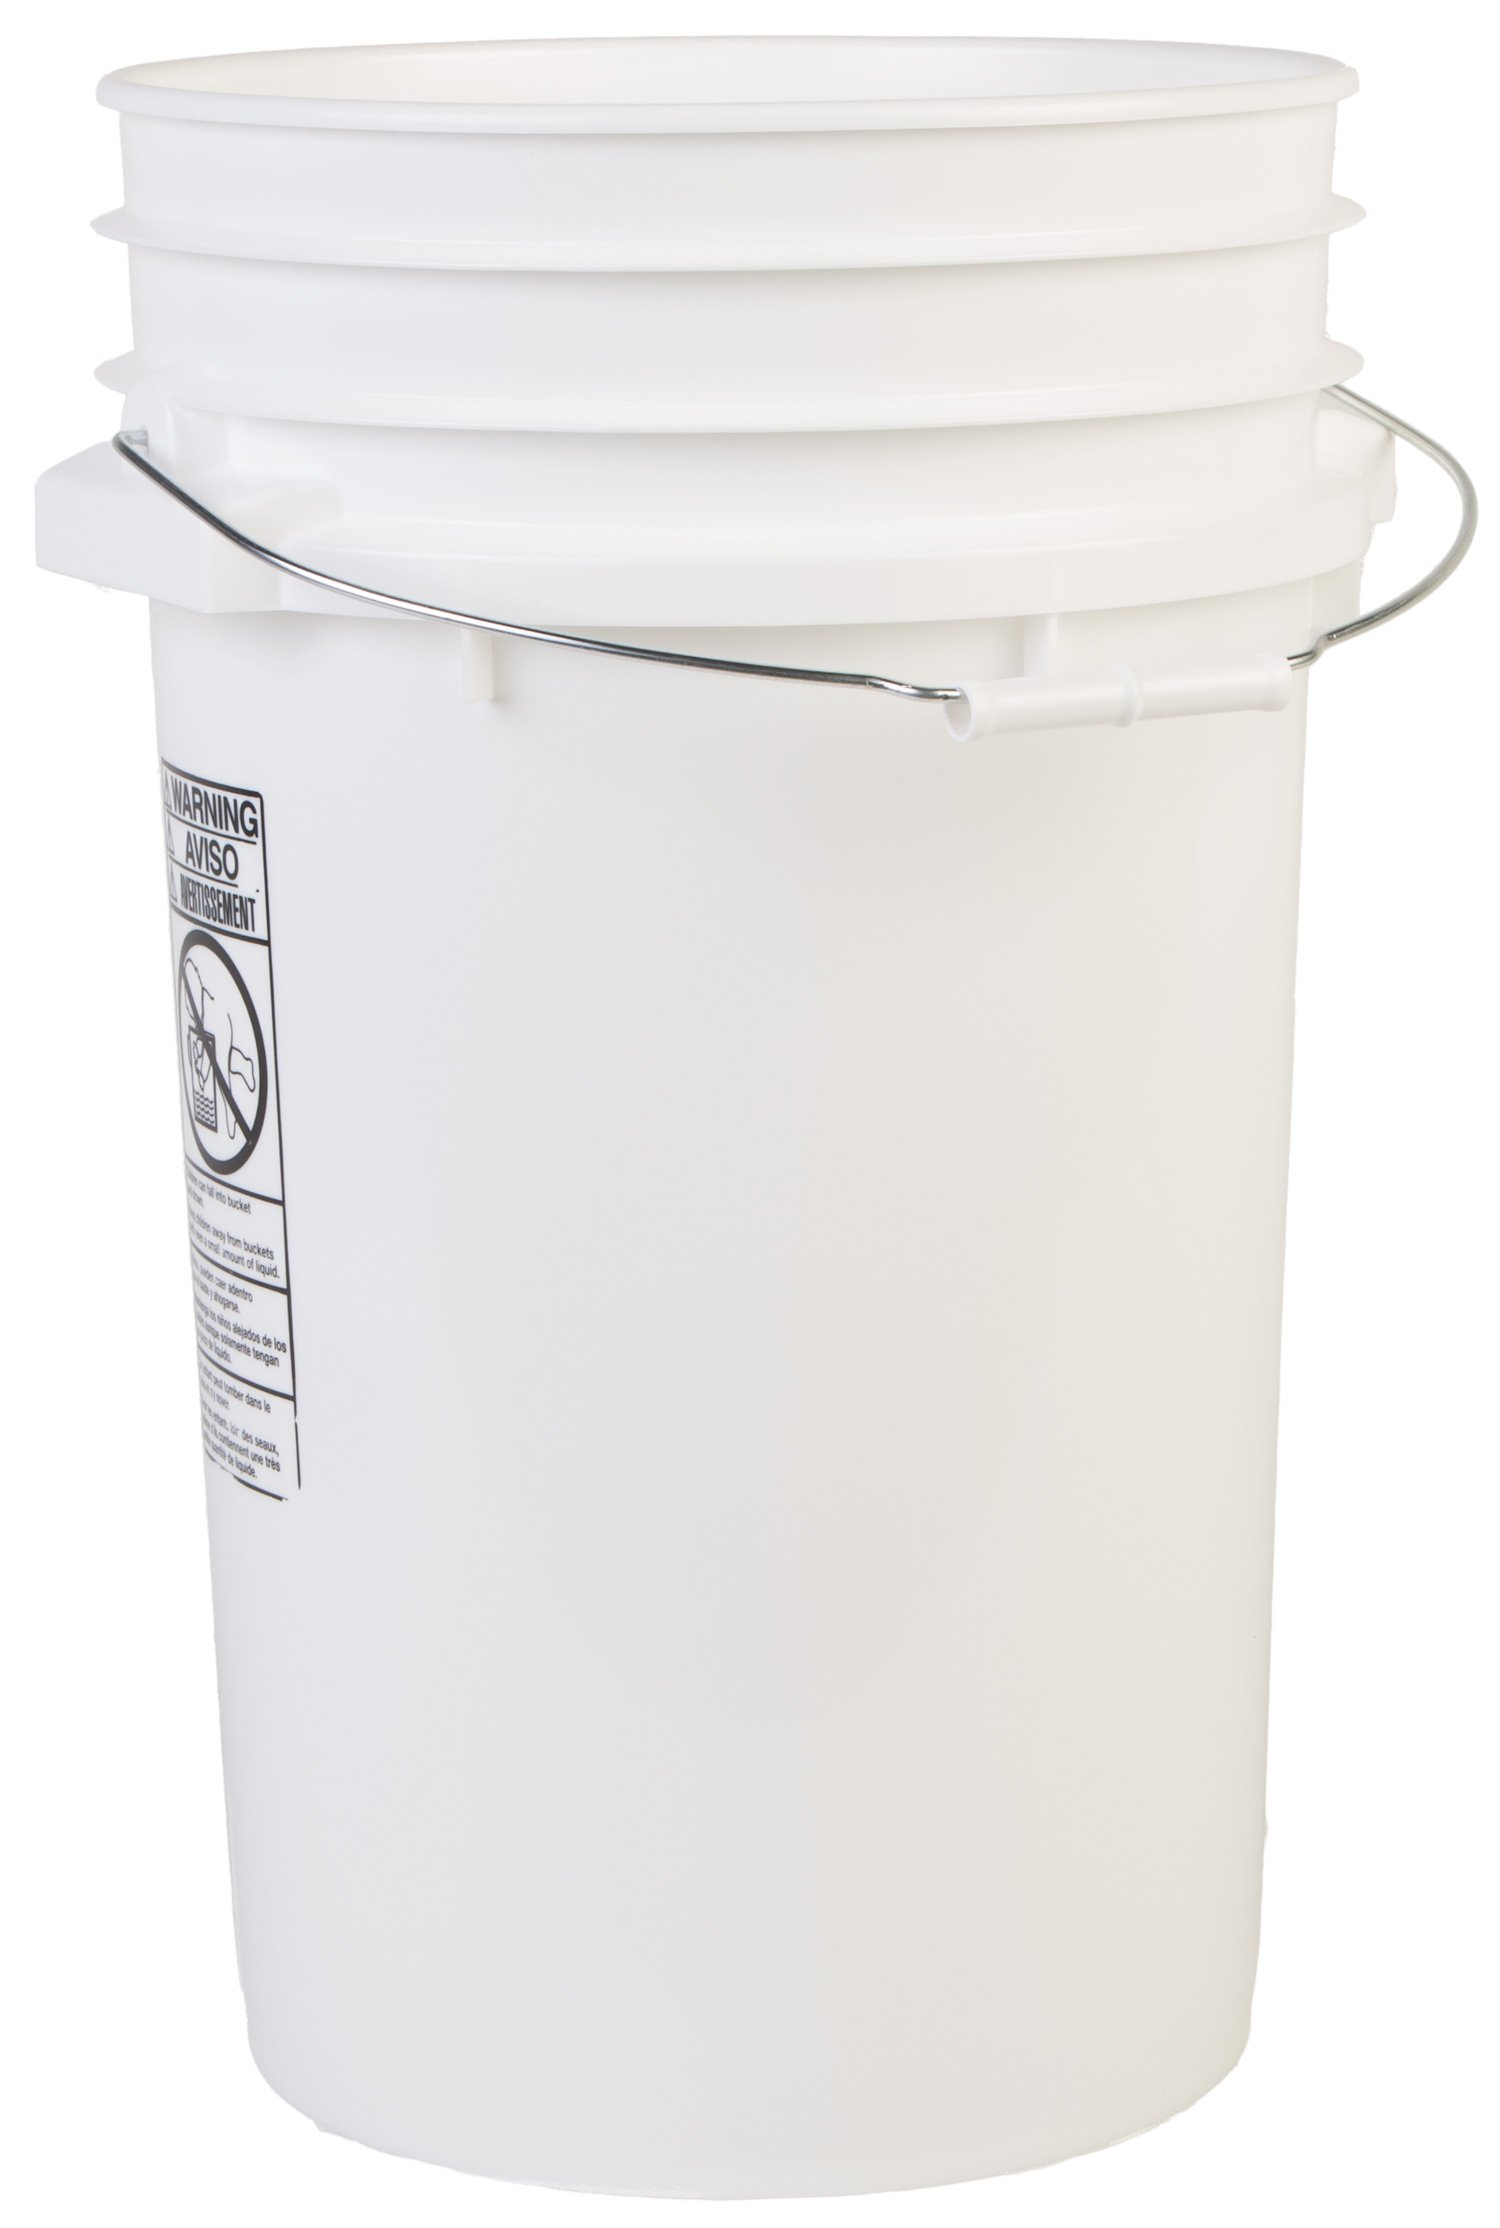 Hudson Exchange Premium 100 Mil HDPE Bucket with Handle, 7 gal, White, Pack of 8